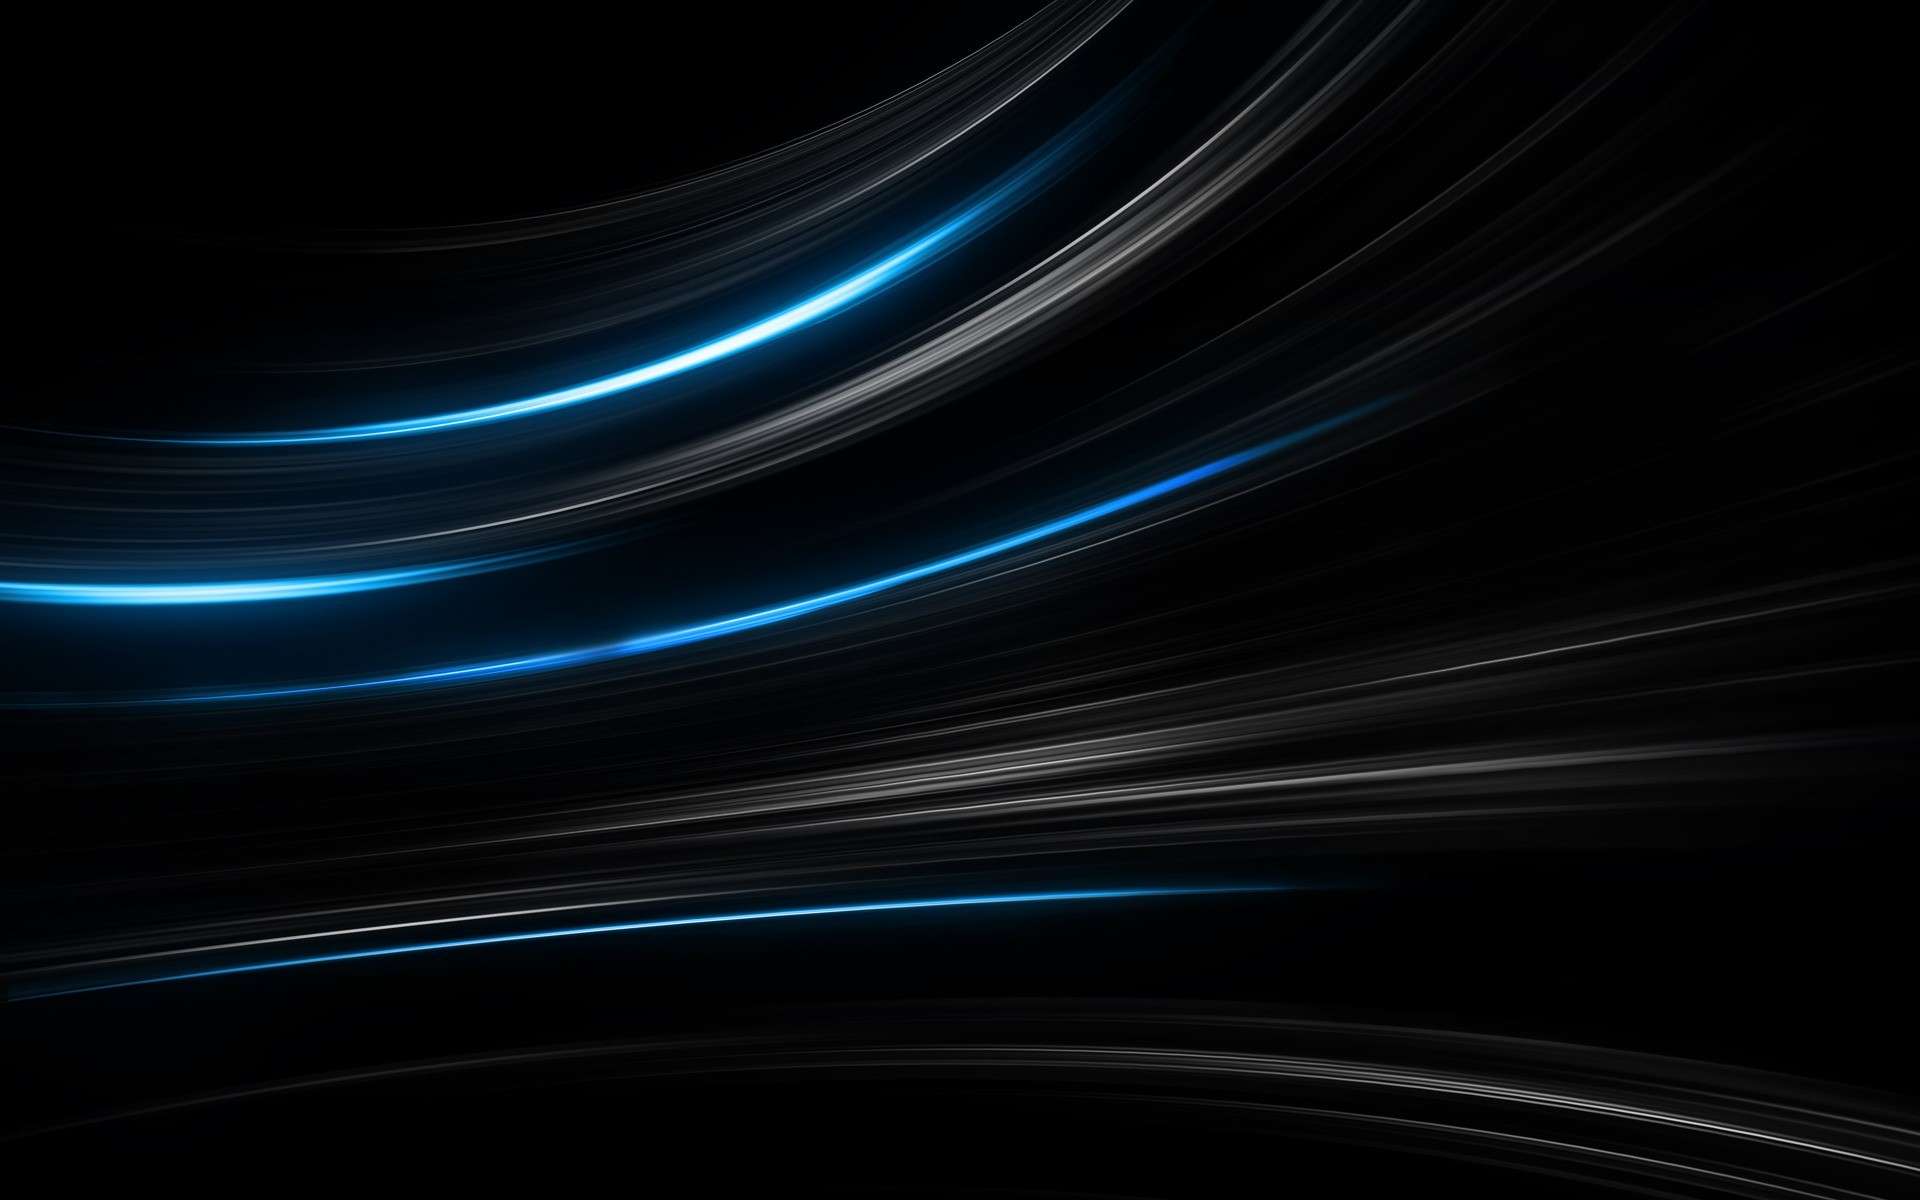 82+ black blue wallpapers on wallpaperplay